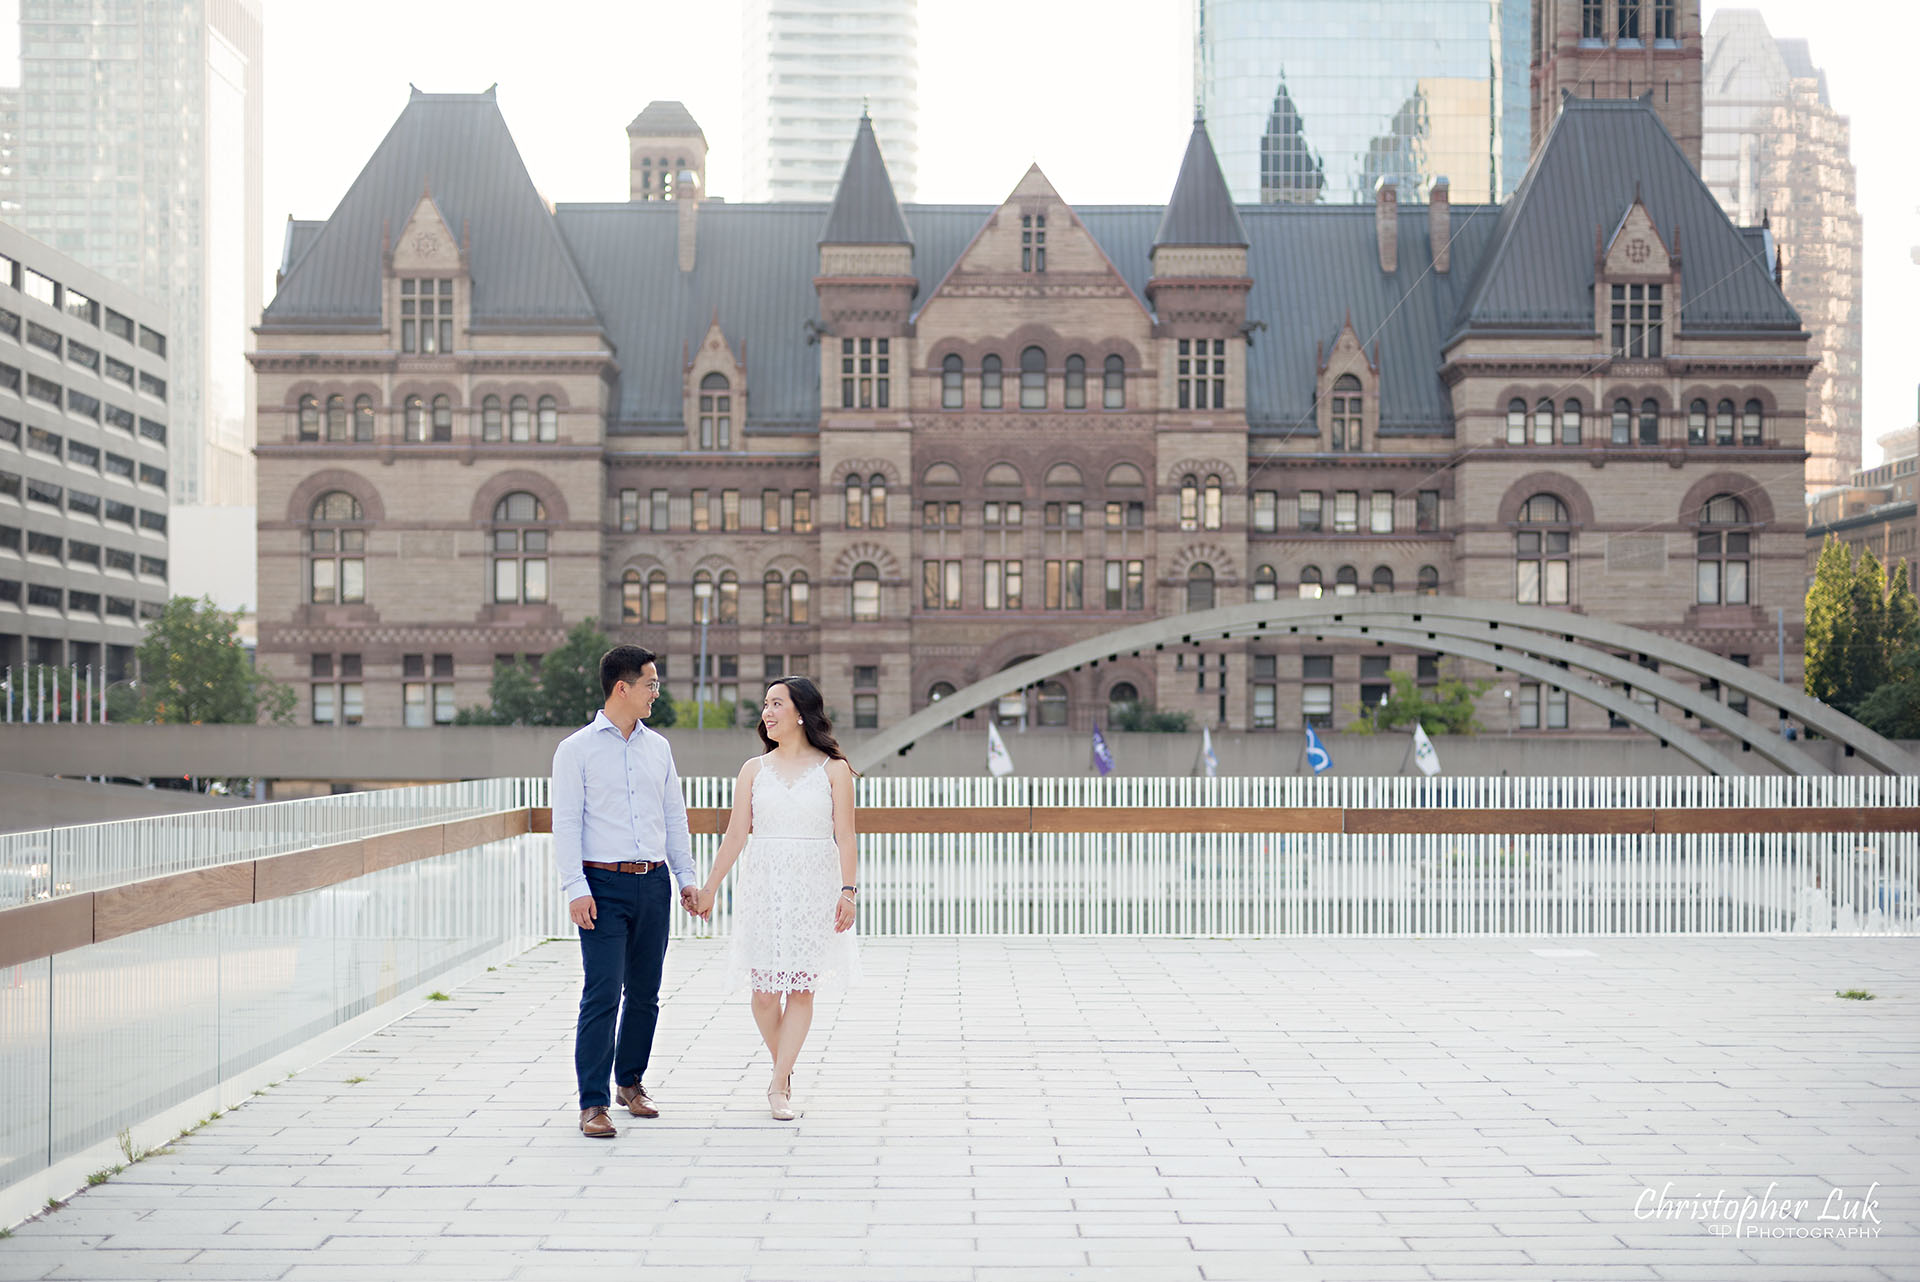 Christopher Luk Wedding Photographer Toronto City Hall Nathan Philips Square Elevated Bridge Arches Archway Bride Groom Holding Hands Walking Together Laughing Intimate Natural Candid Photojournalistic Wide Landscape